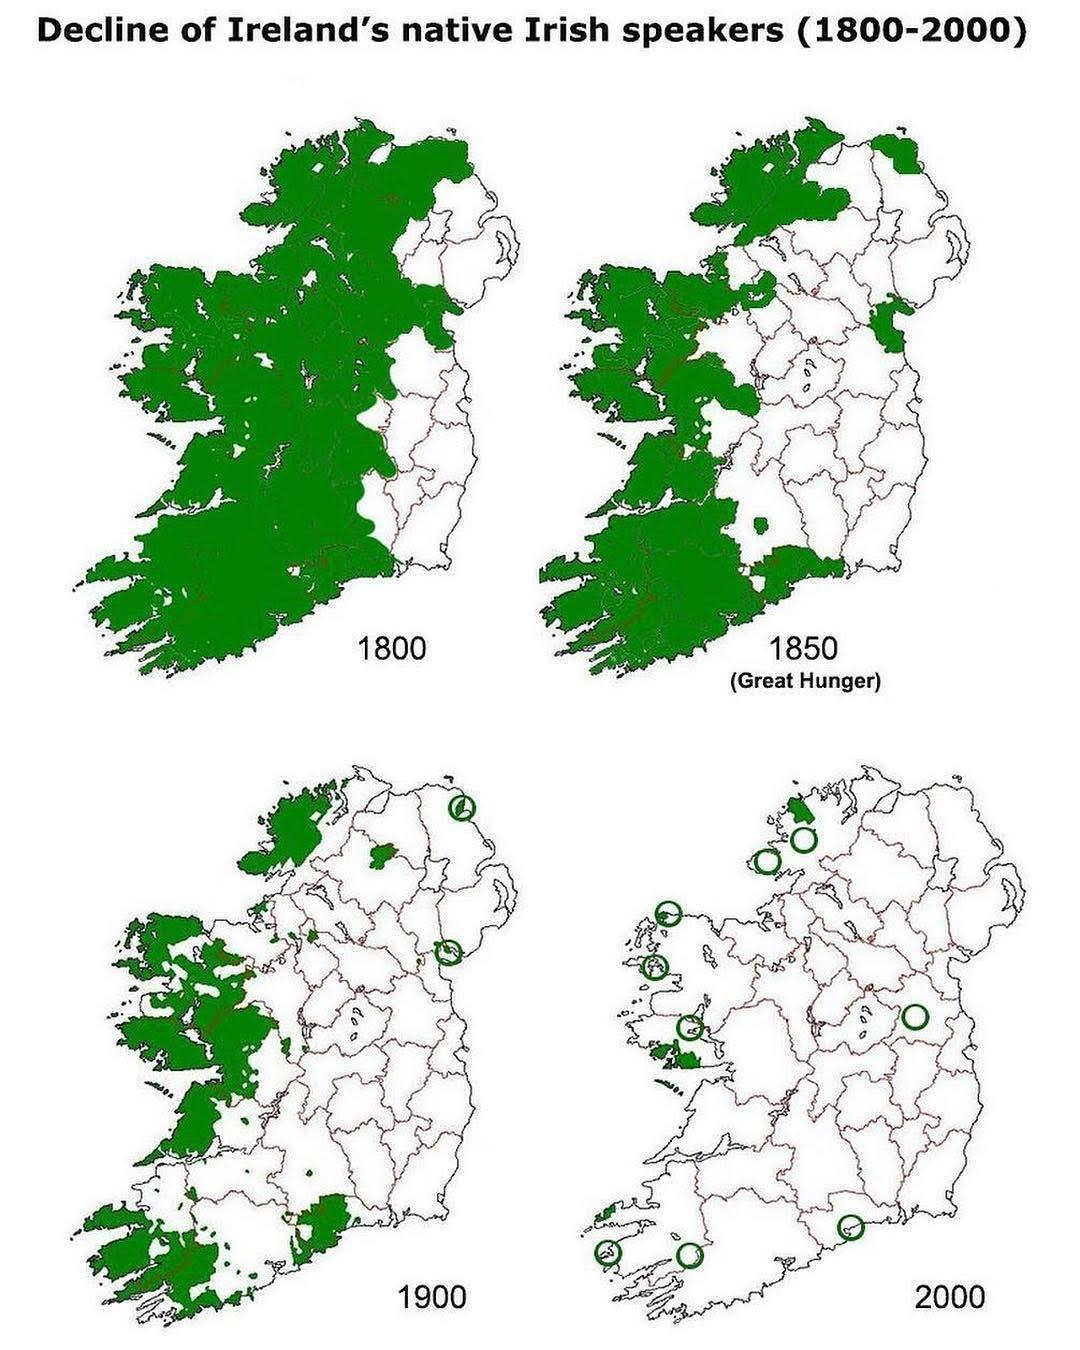 decline of ireland's native irish speaker